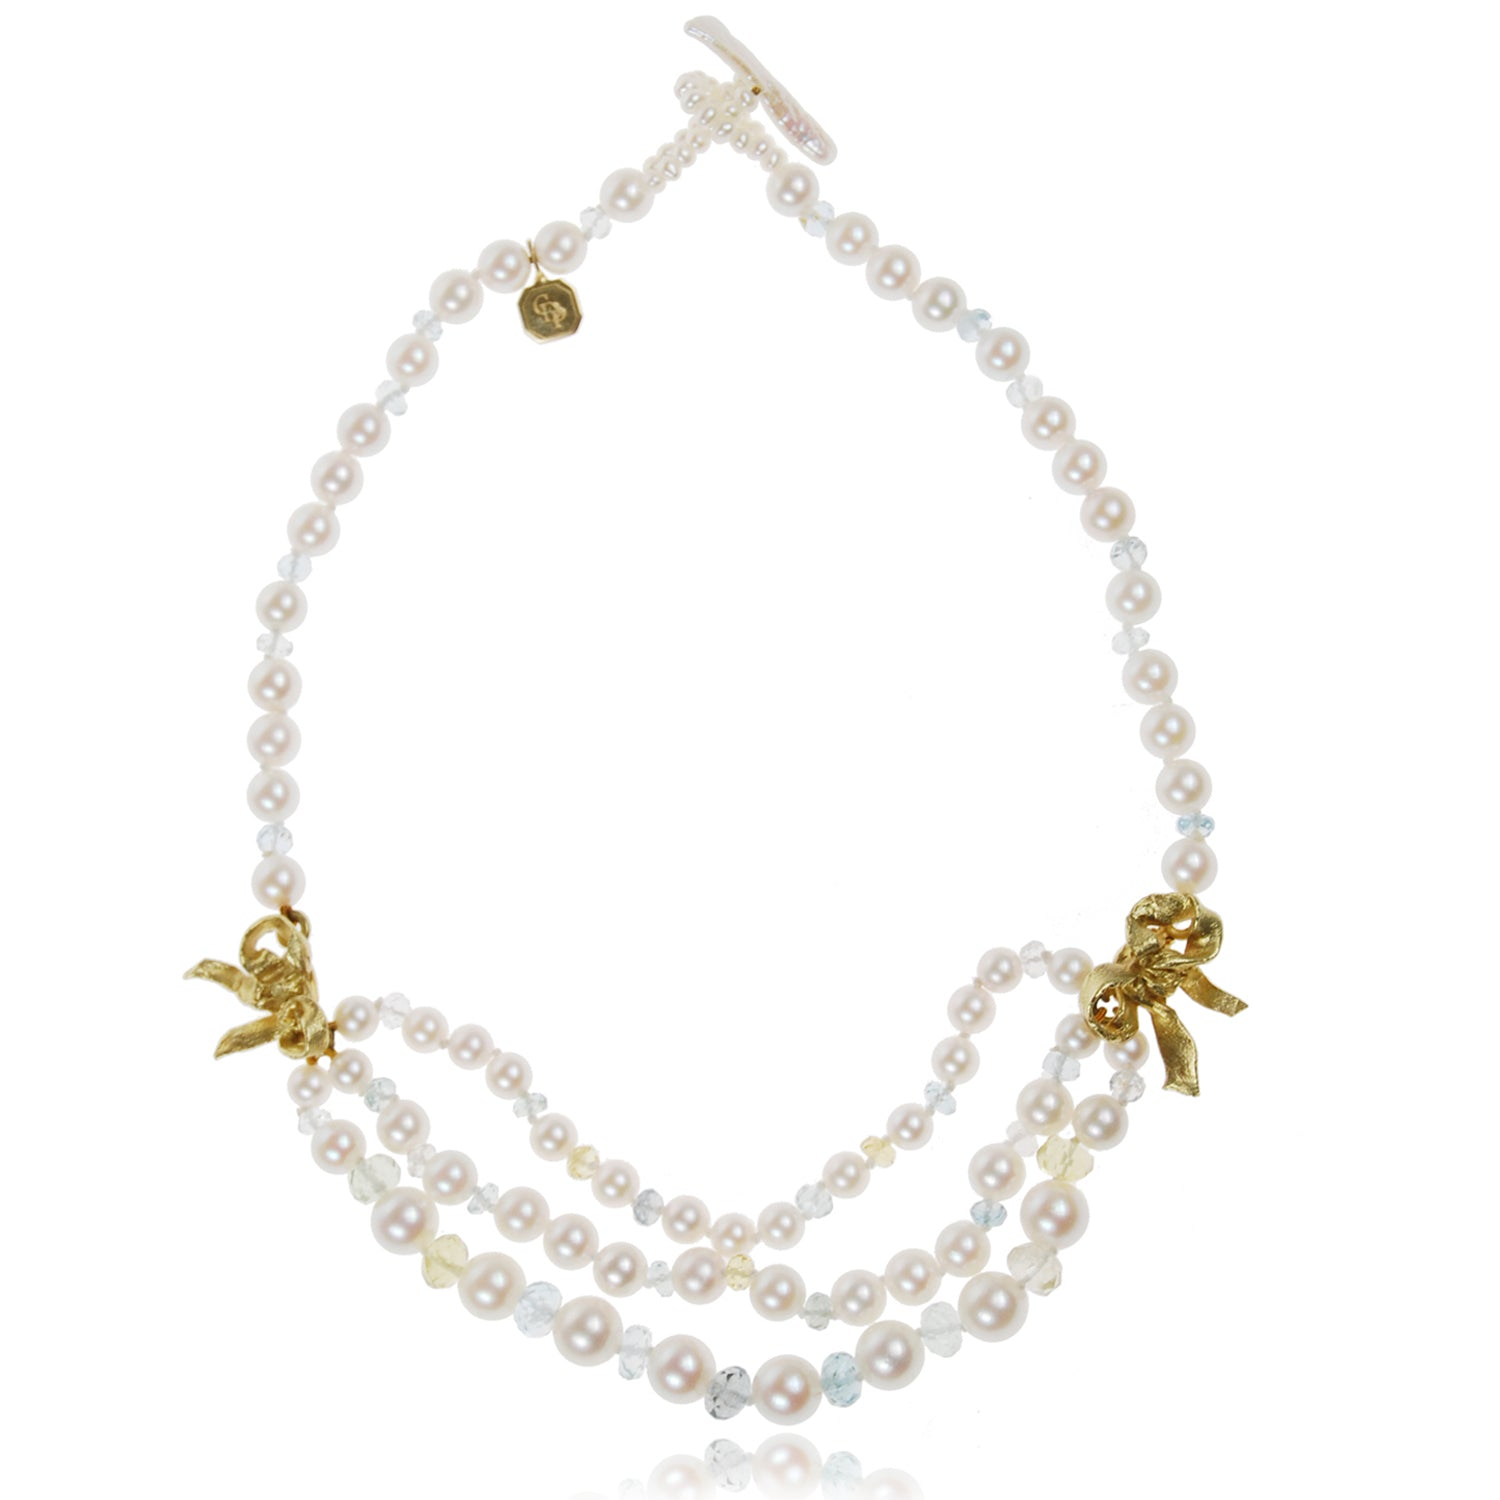 Multistrand Akoya Pearl Necklace with Gold Bows